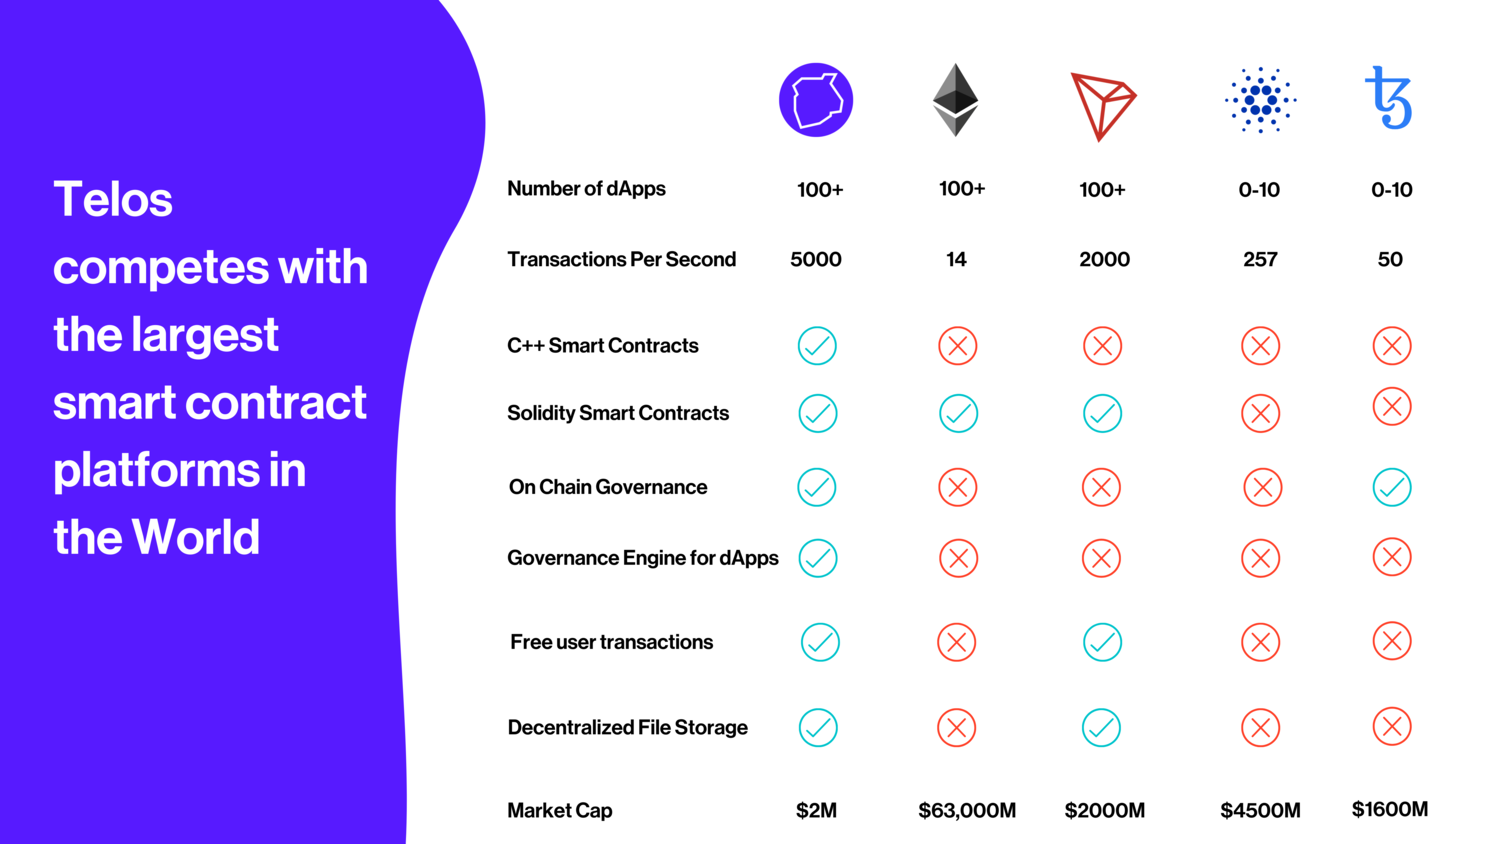 Telos competes favorably to the largest market cap solutions. The major difference being Telos' lack of a major fundraising event.